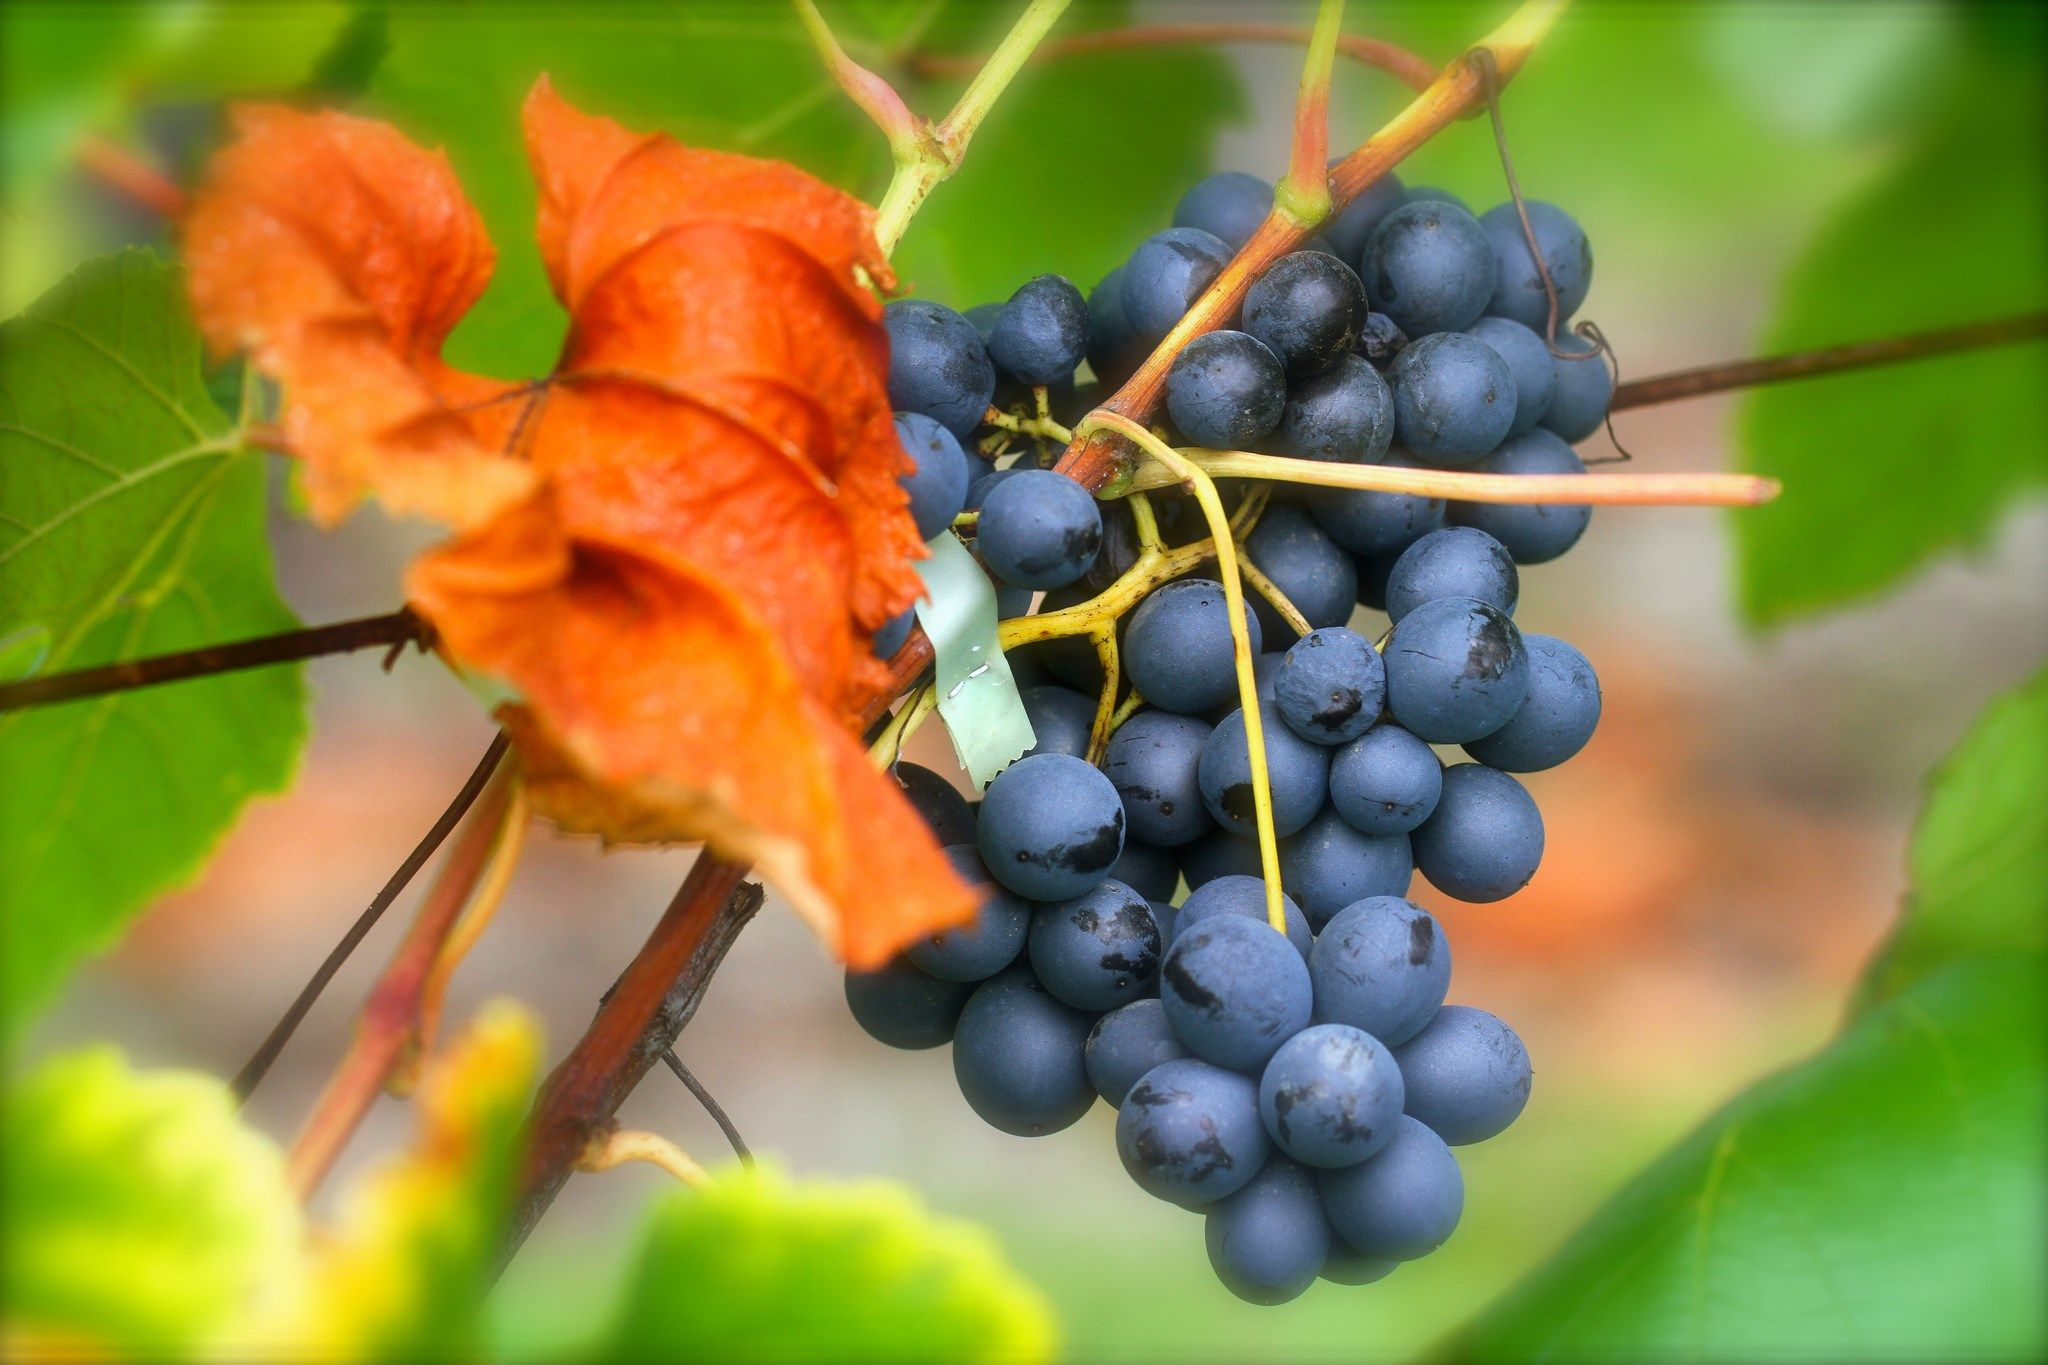 2048x1365 Wallpaper Images Grapes Grapes Grape Wallpaper Best Fruits